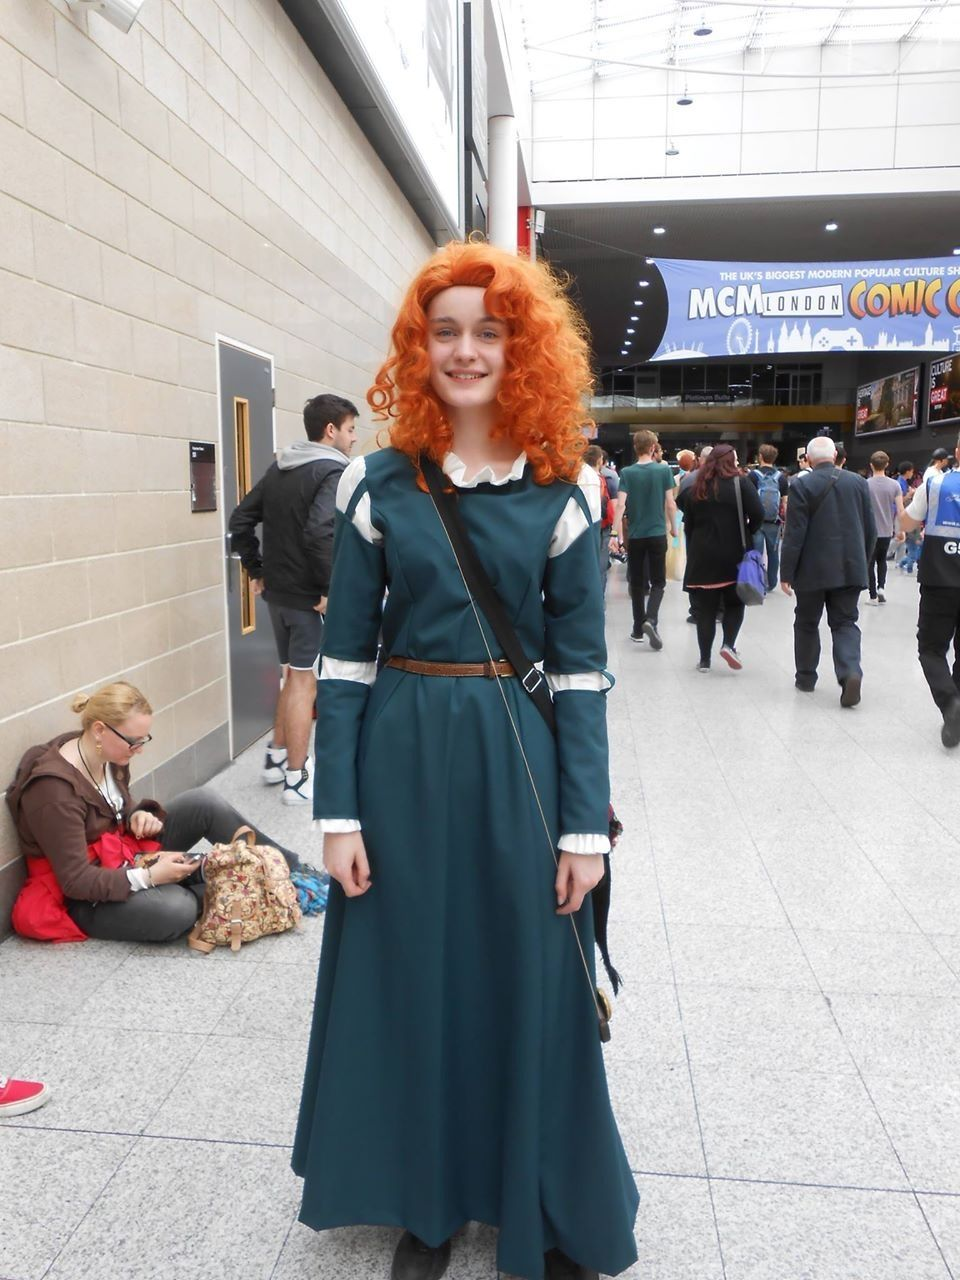 Merida Cosplay by Billie Thornton Archery Brave Comic Con